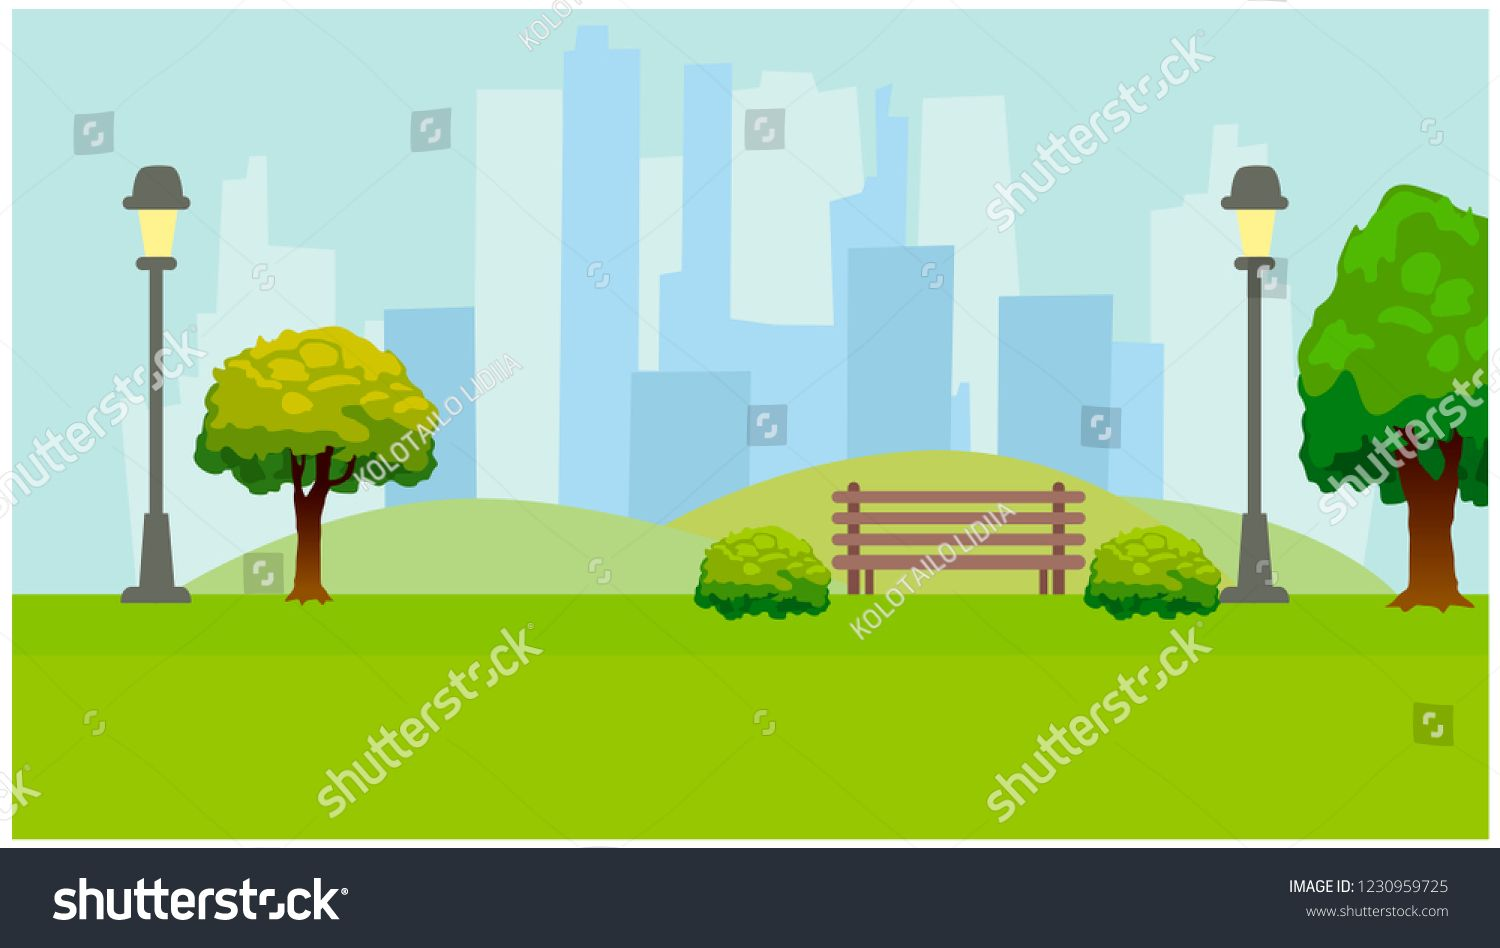 City Park Lights Trees Bench Green Horizontal Background Flat Vector Illustration Sponsored Graphic Design Business Vector Illustration Business Design